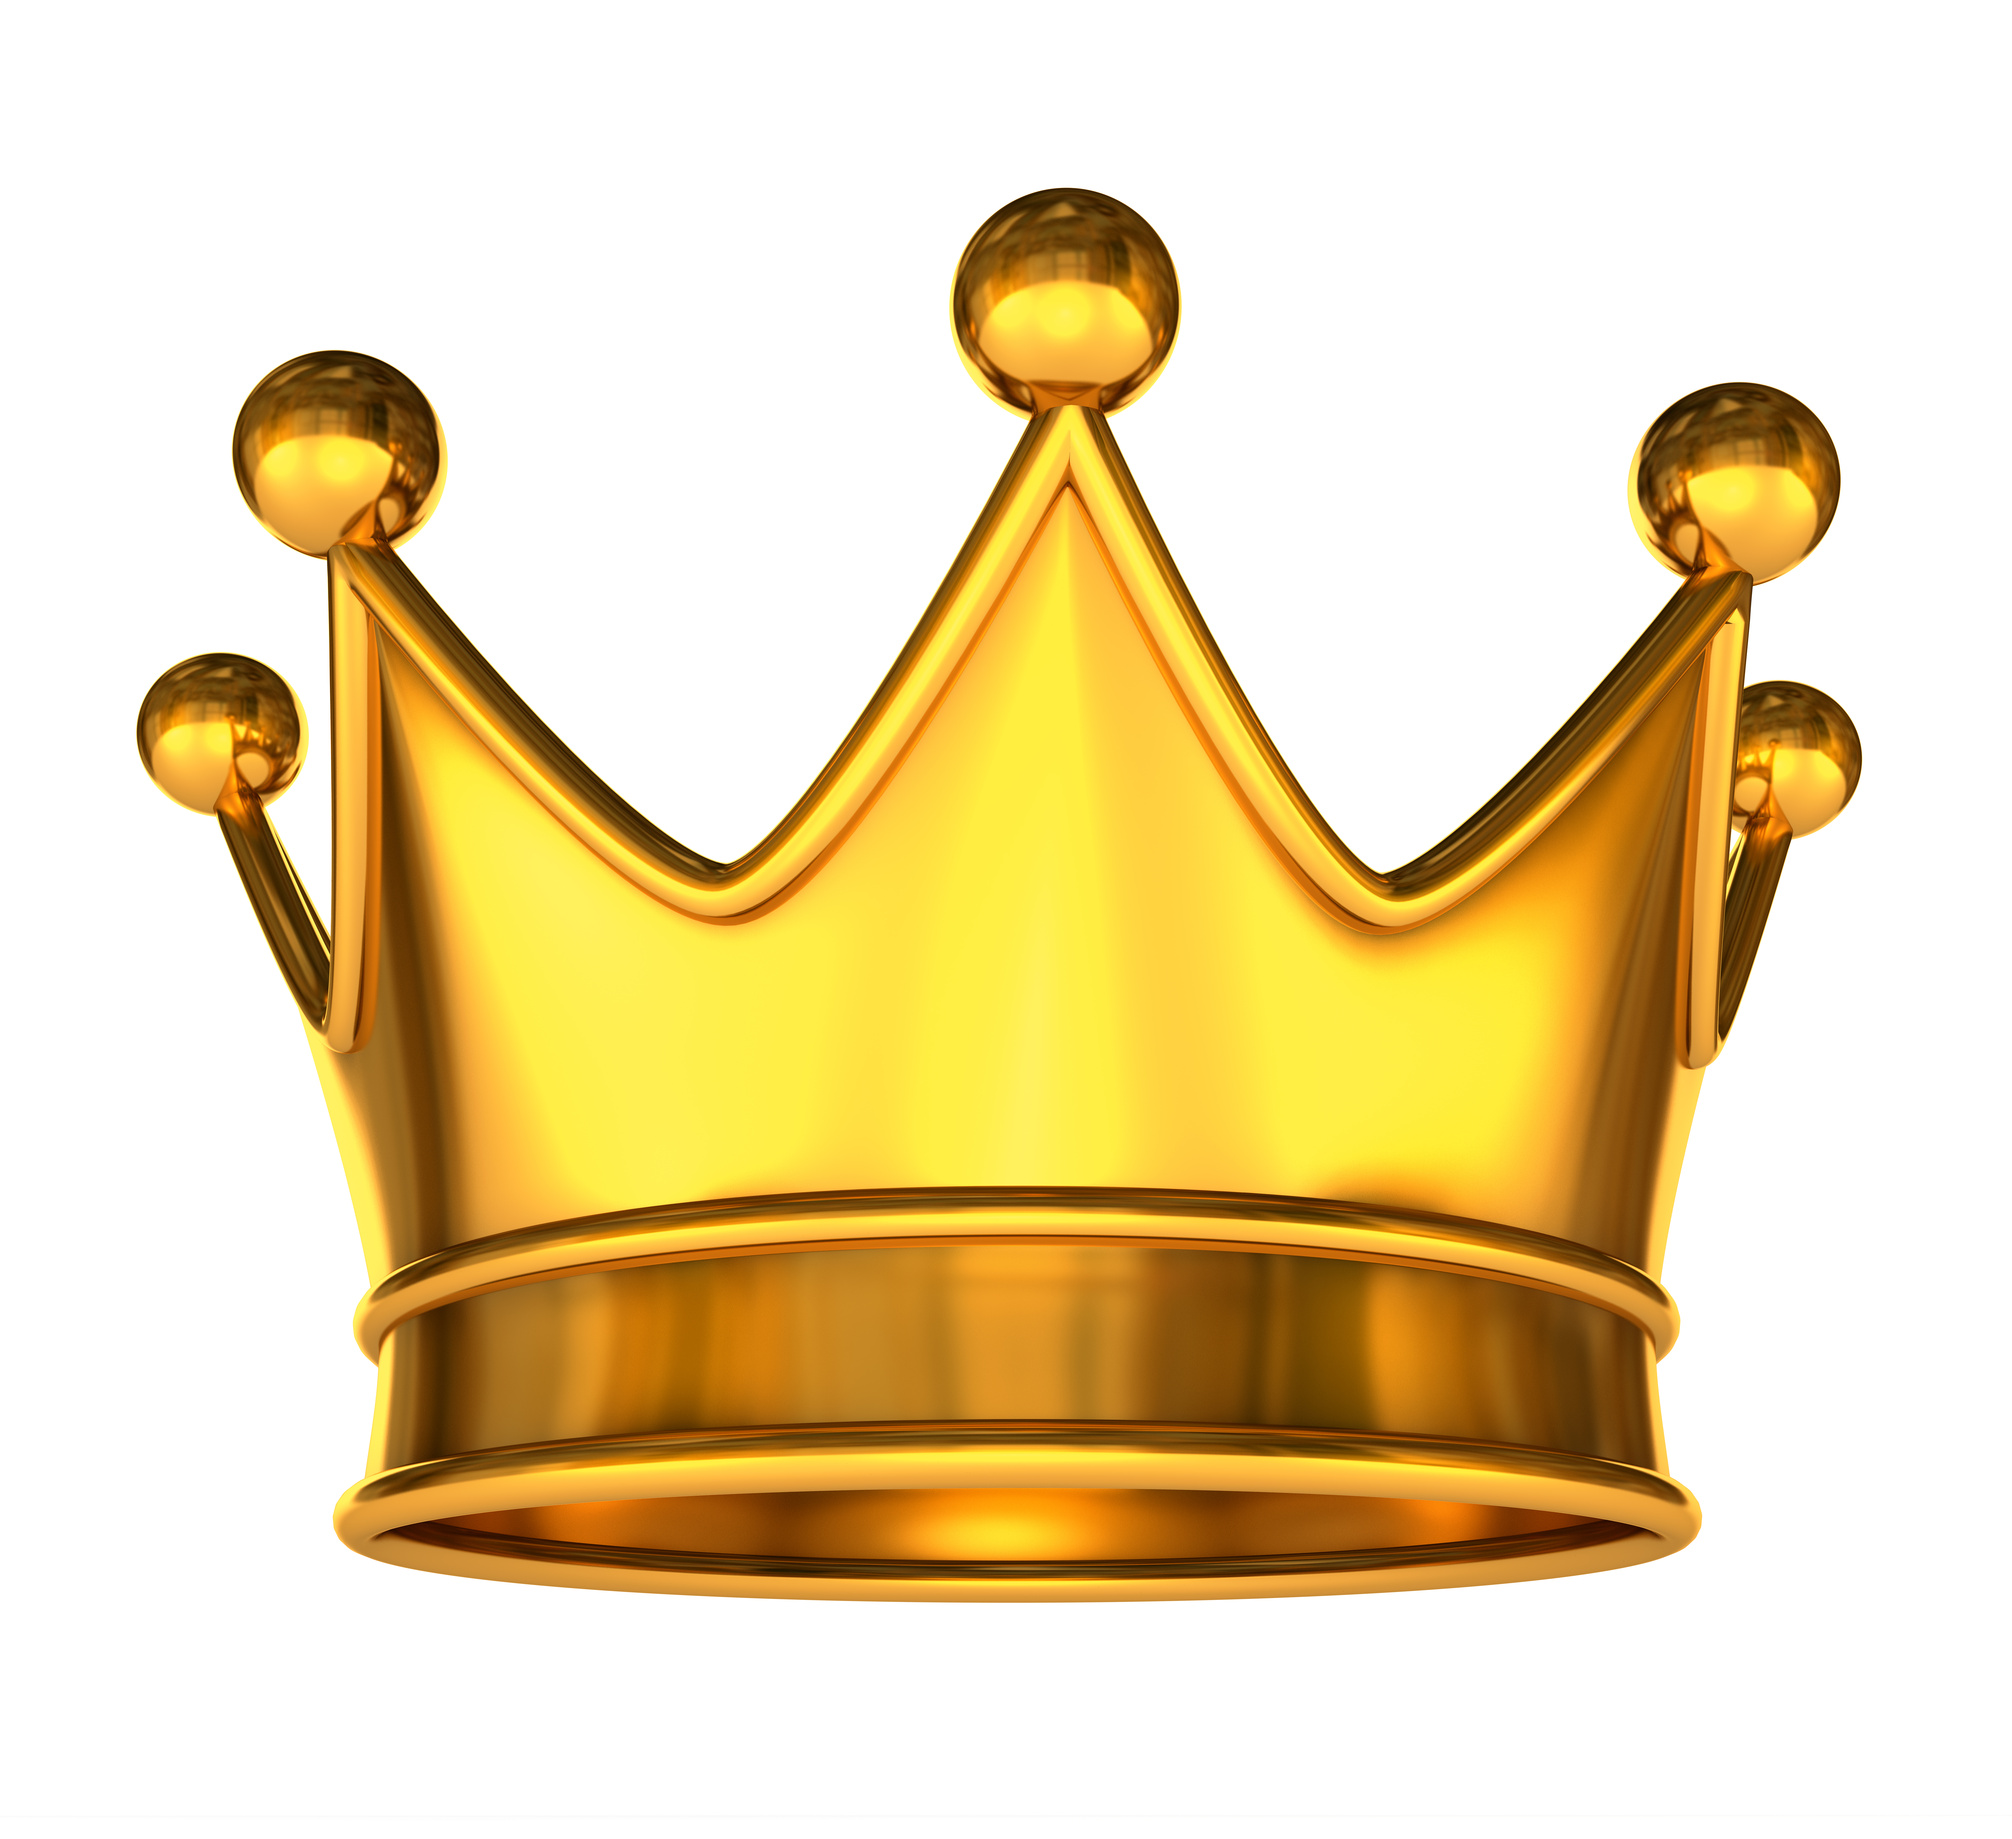 king crown png clipart